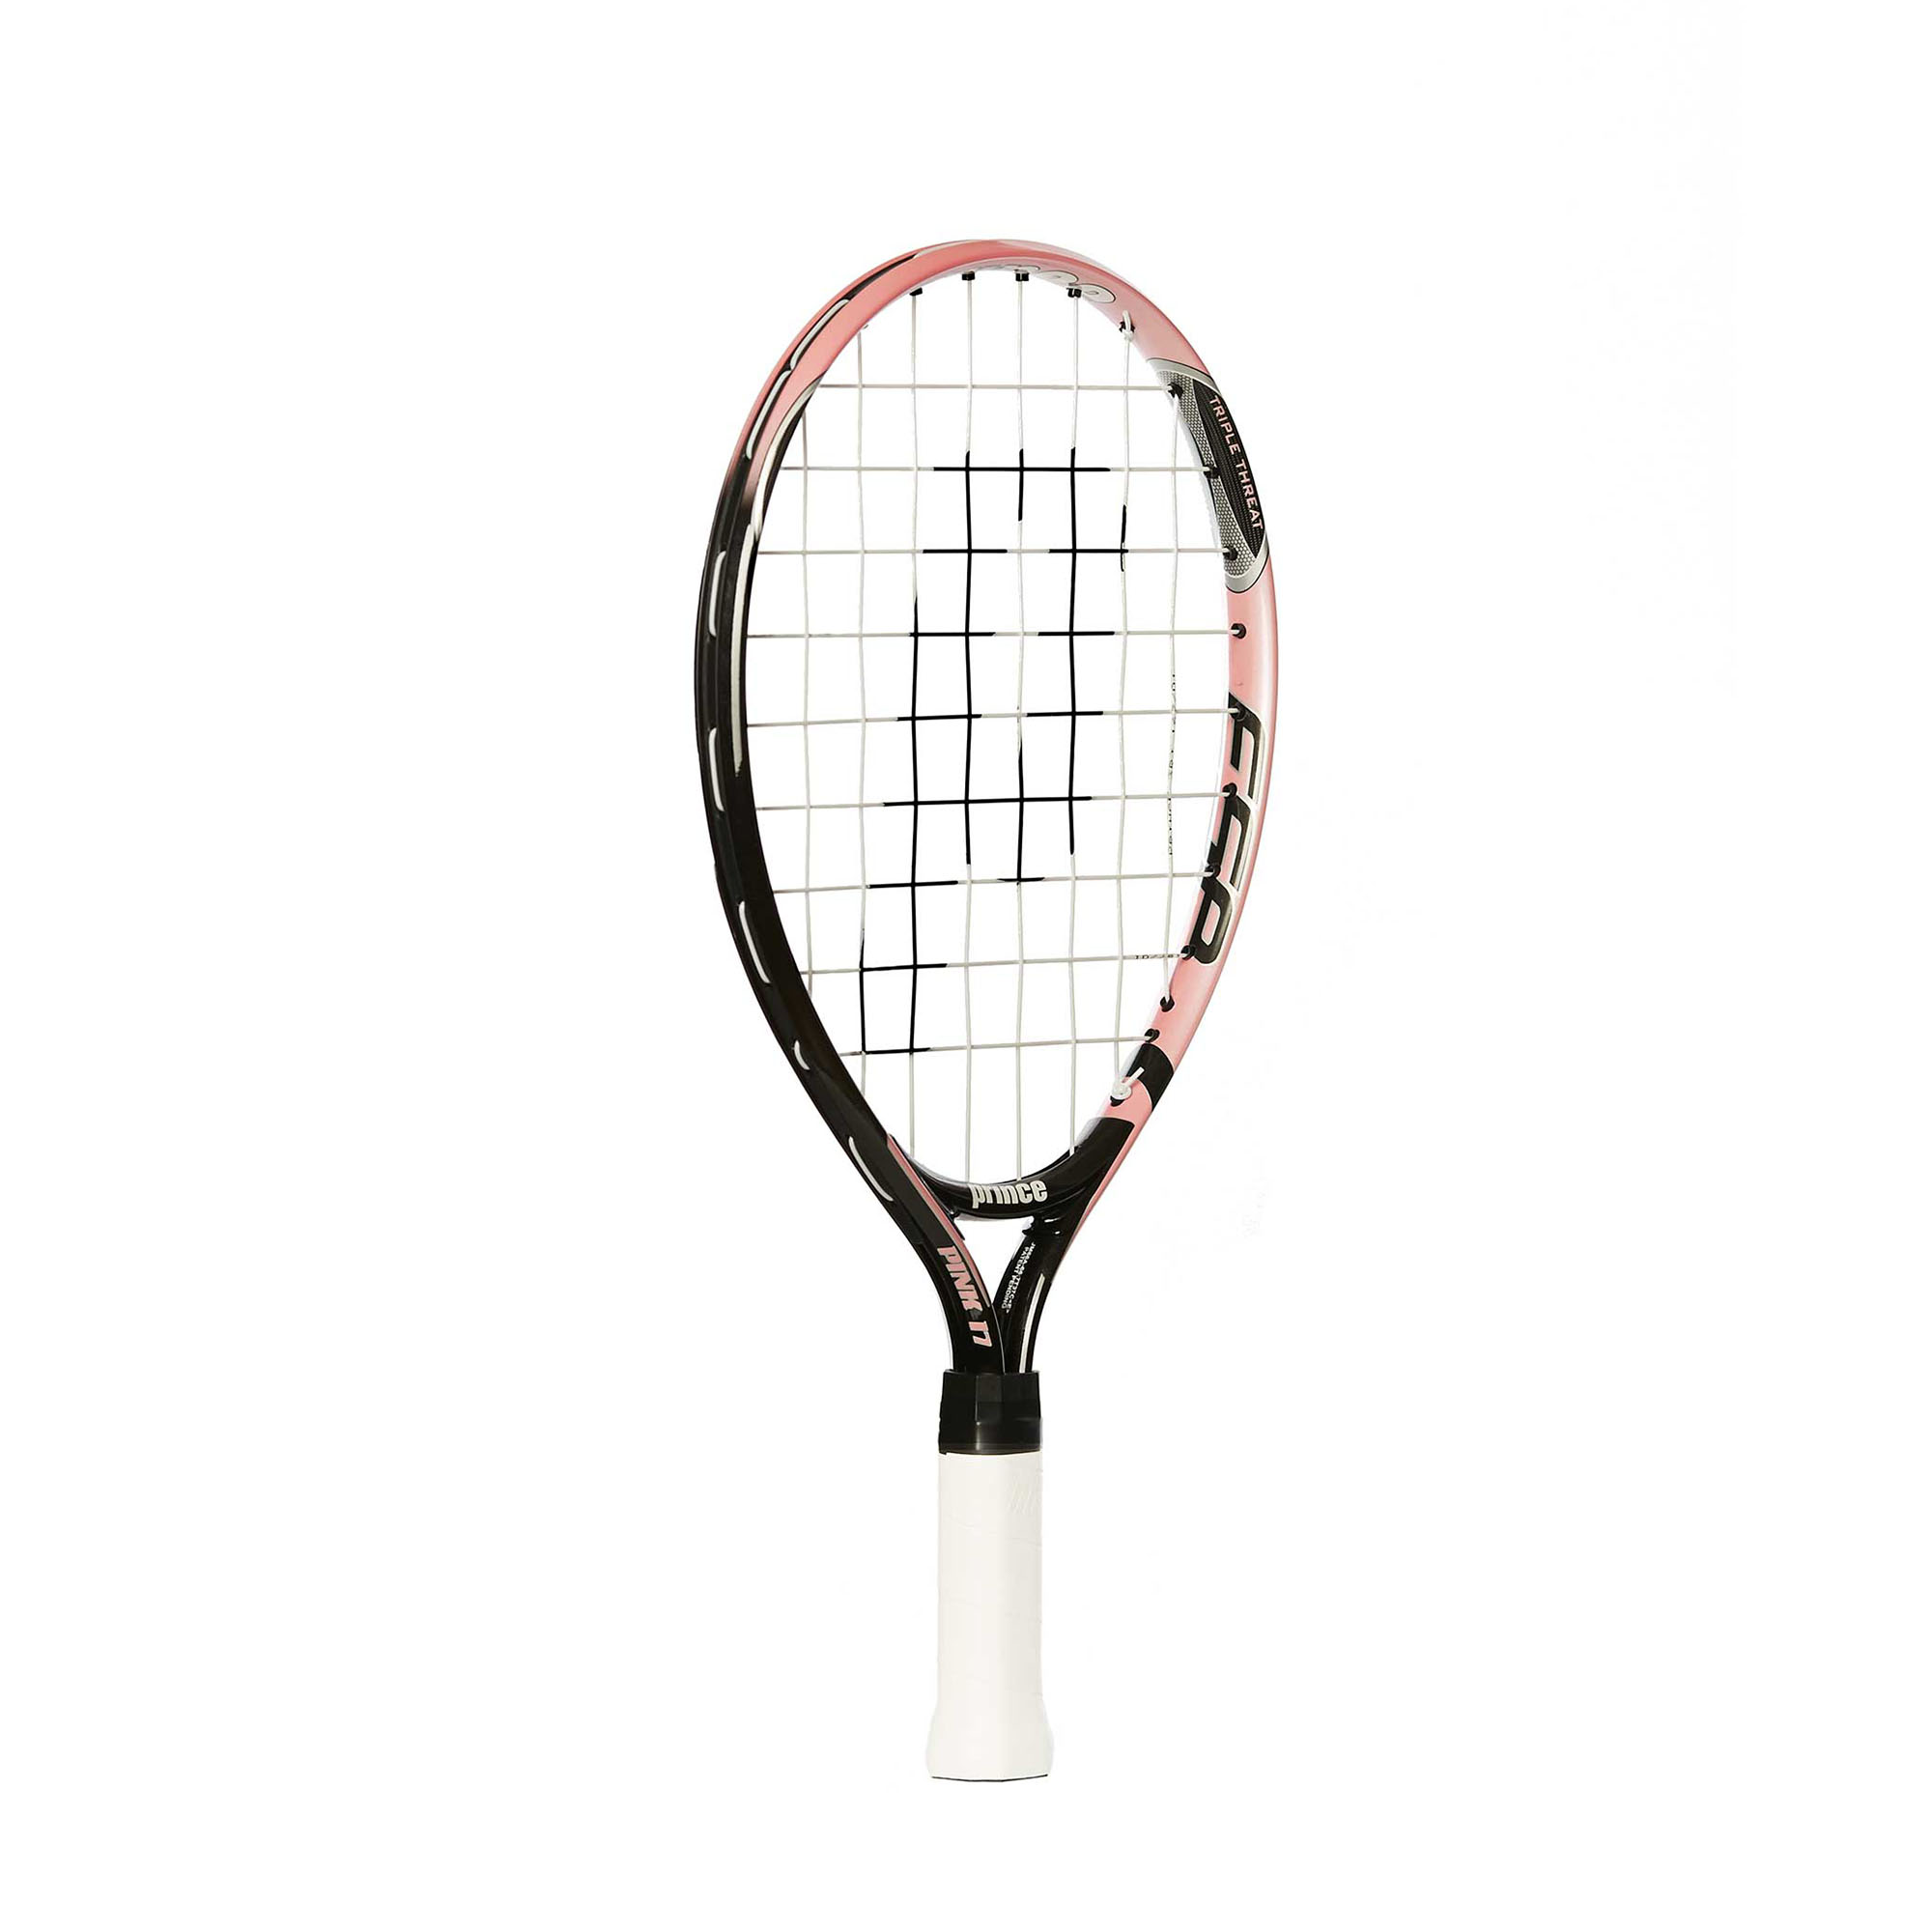 Prince Titanium Pink 17 Junior Tennis Racket